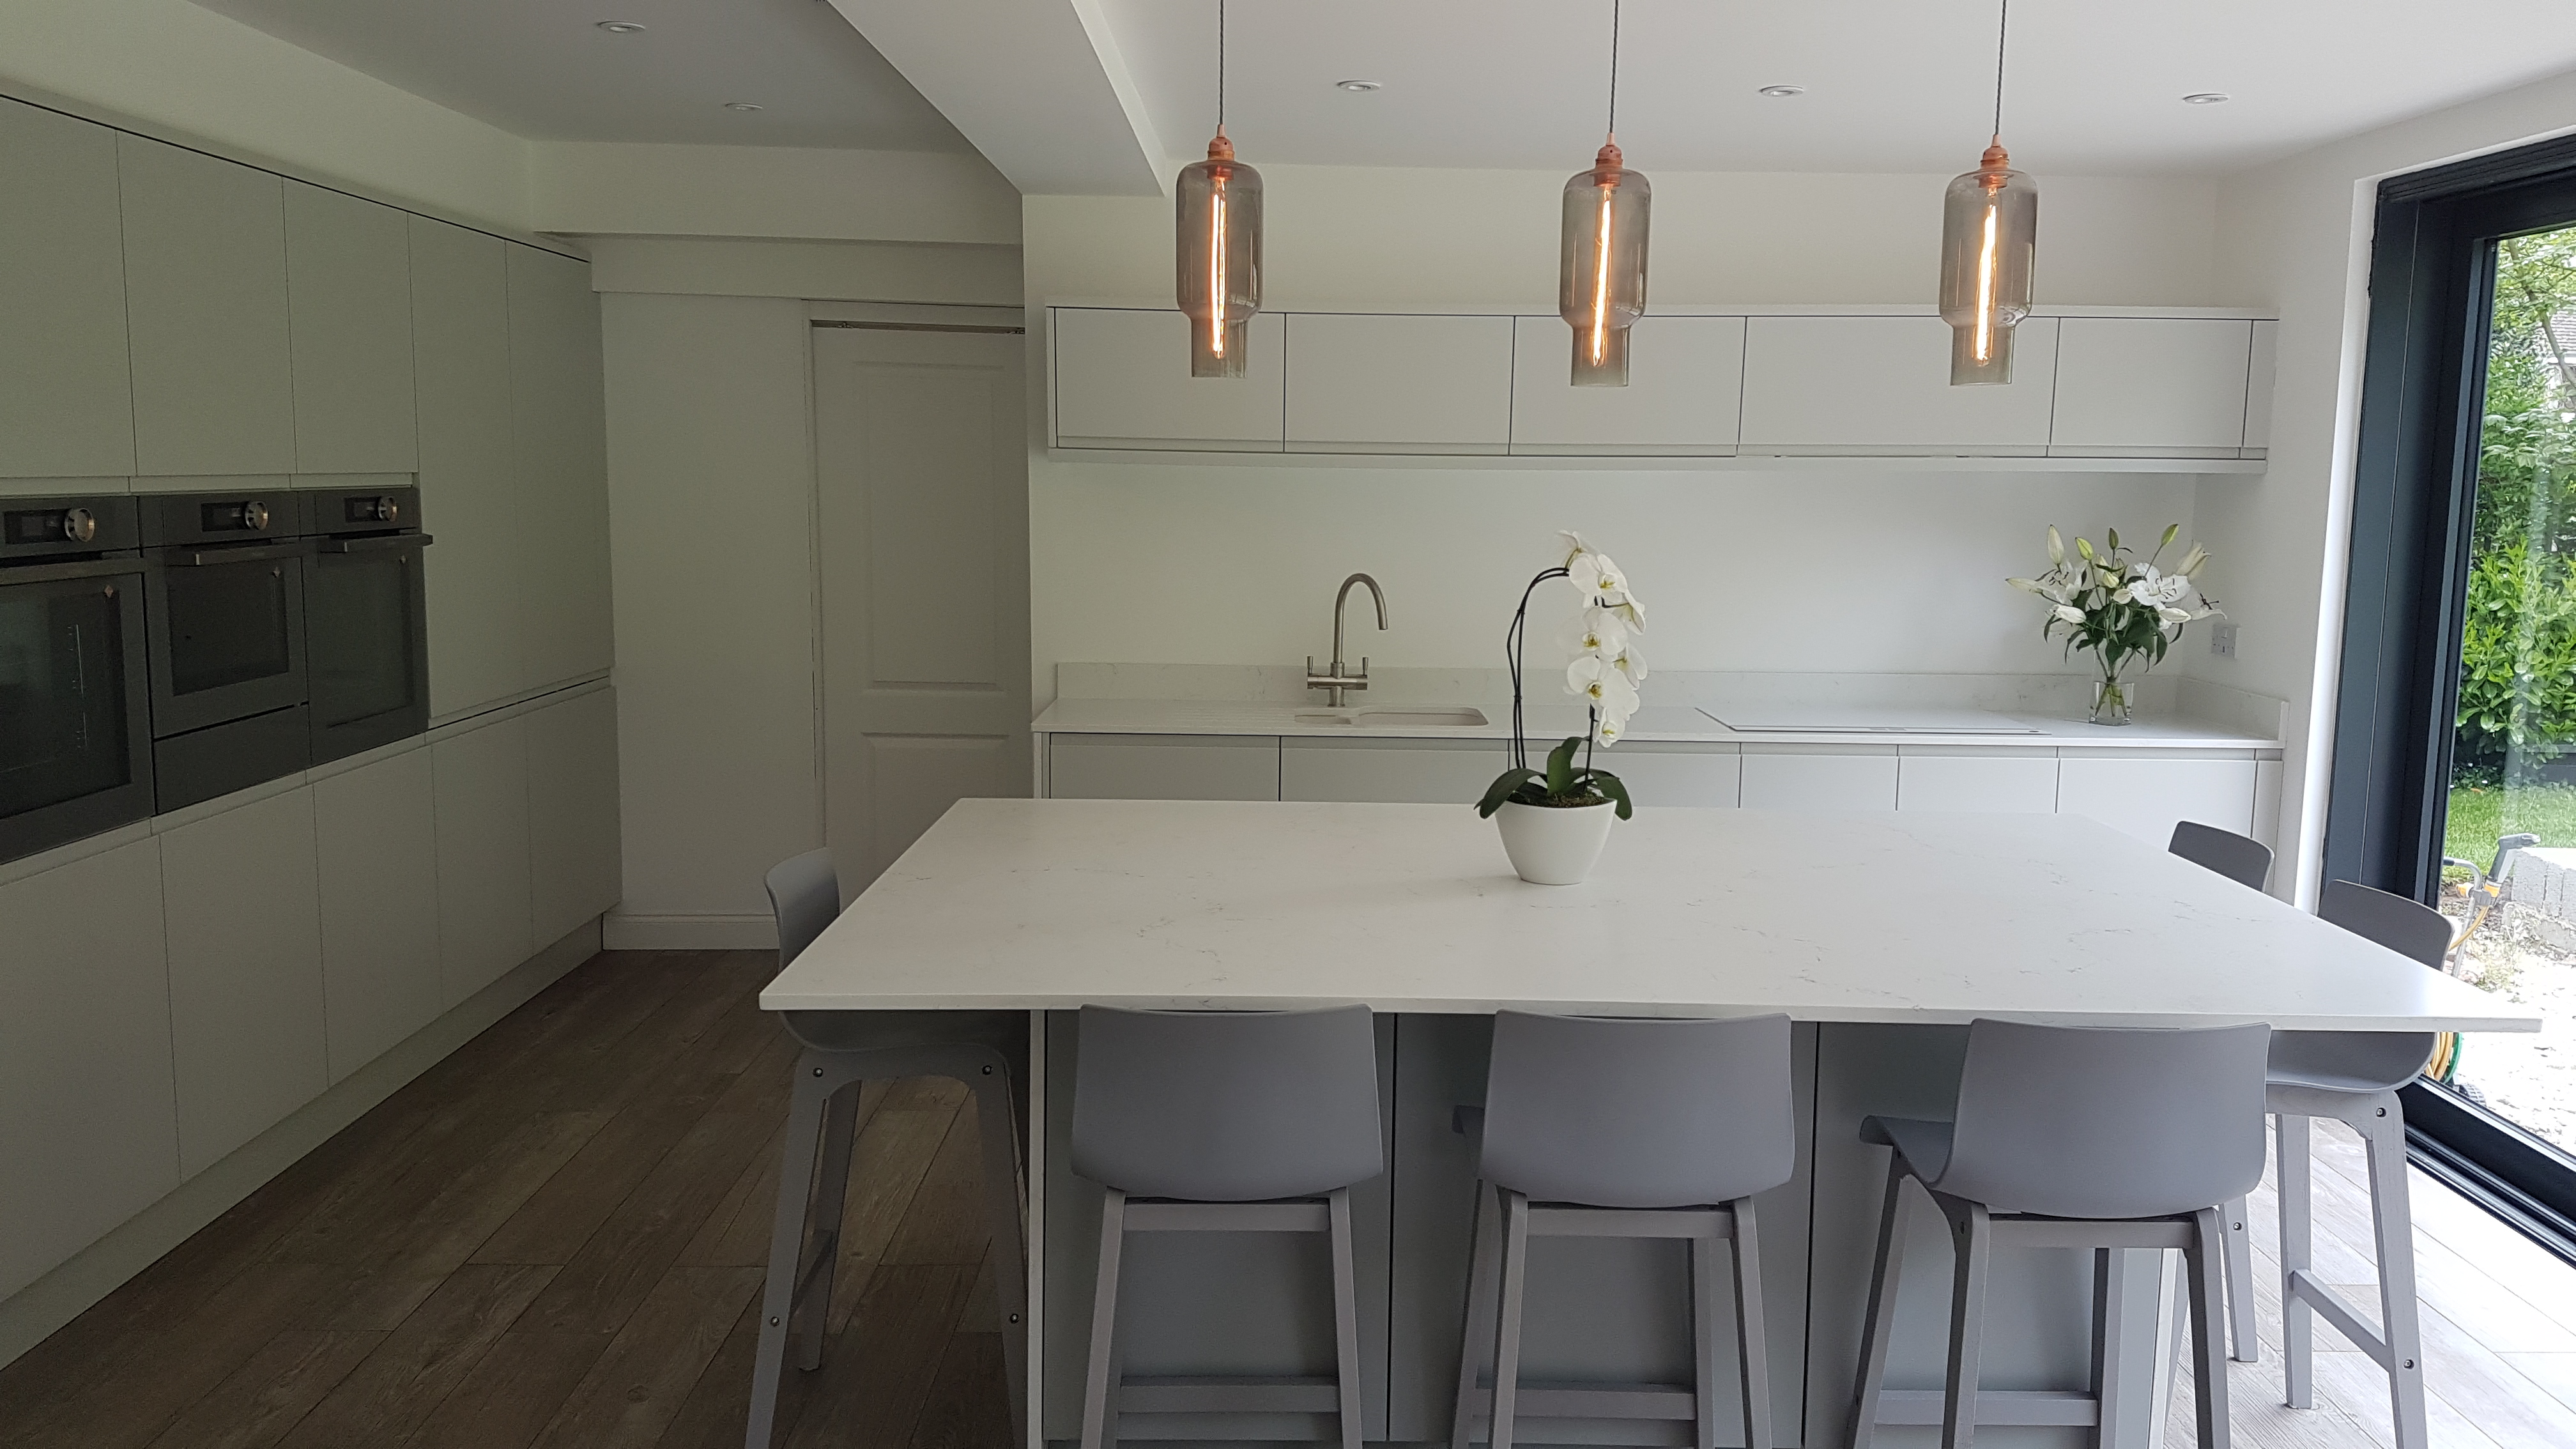 Croft Architecture How to Plan a Perfect Kitchen with The Rigid Kitchen Company